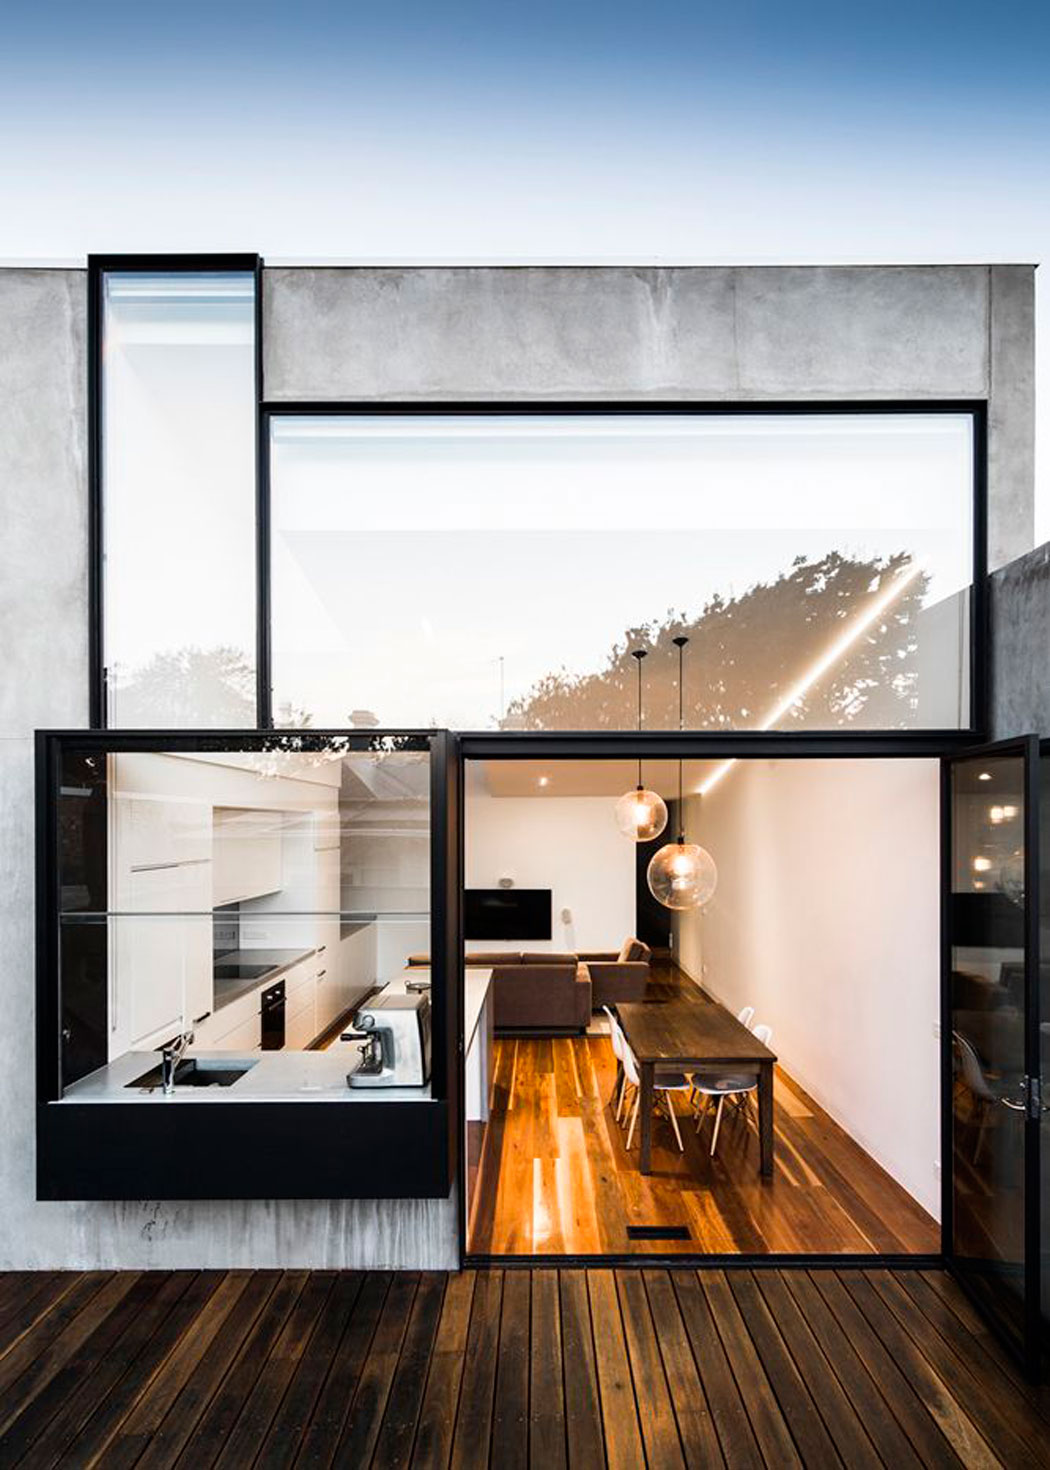 HERO-Glass-Concrete-Modern-home-Architecture-ITCHBAN.com